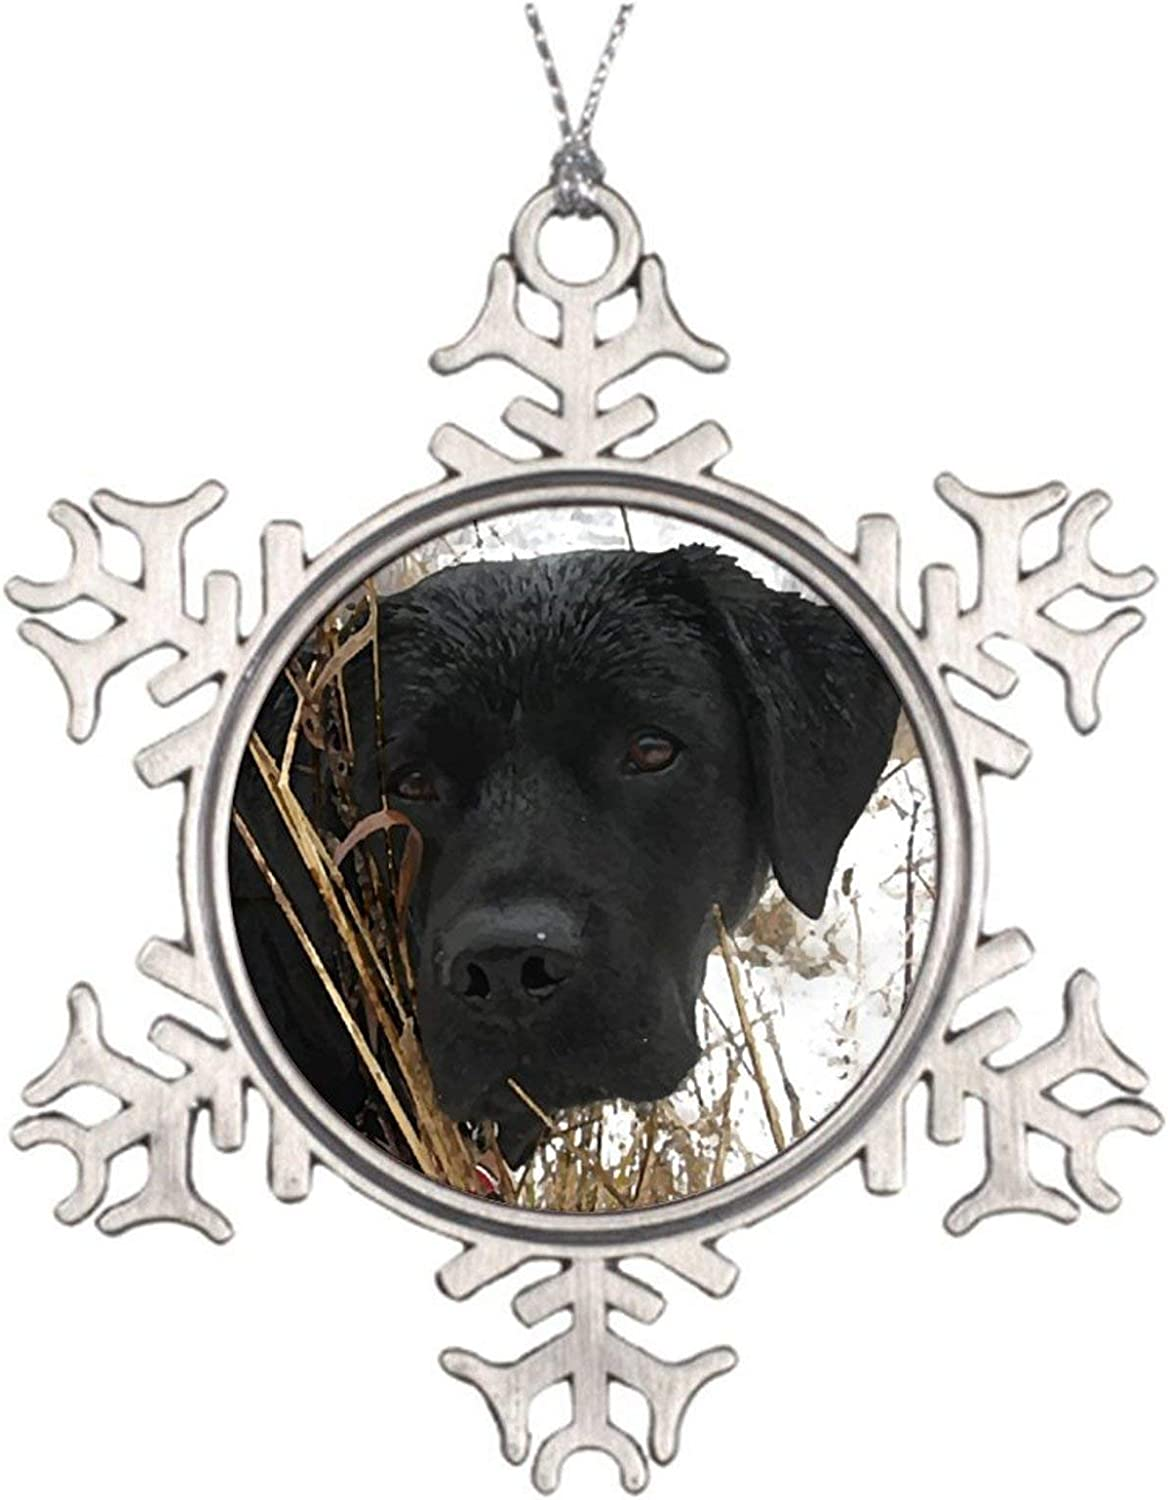 Christmas Ornaments, Black Lab Cute Duck Dog Hunting Dog Labrador Pewter Ornament, Art Print Snowflake Ornament Tree Hanging Decor Gift,3 Inch